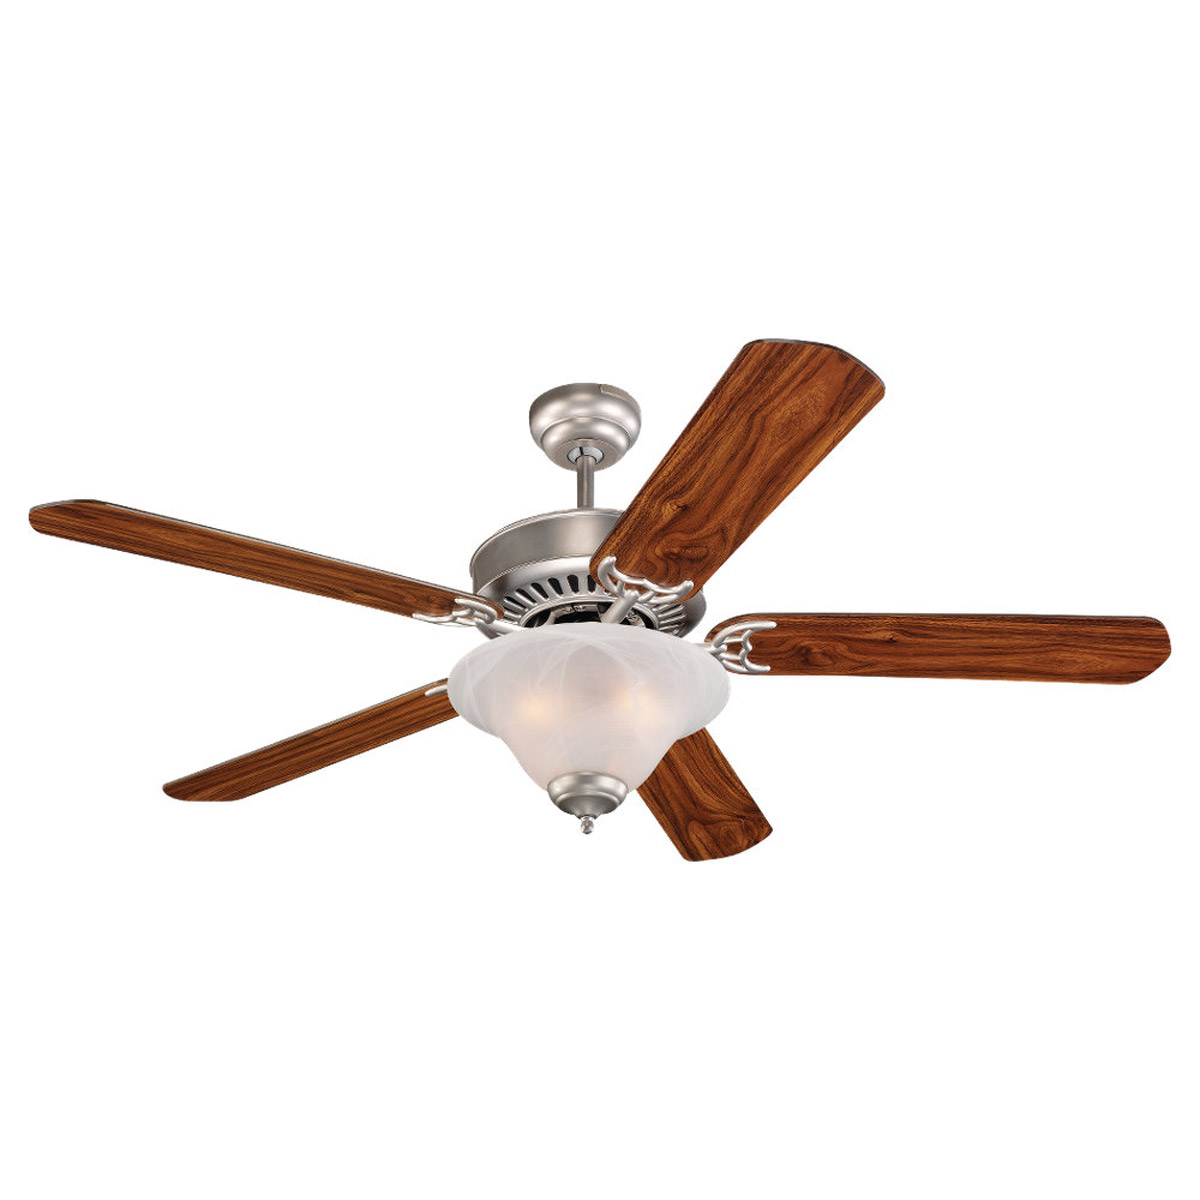 Sea Gull Lighting 3 Light 52in Quality Pro Deluxe Ceiling Fan in Brushed Pewter 15160B-255